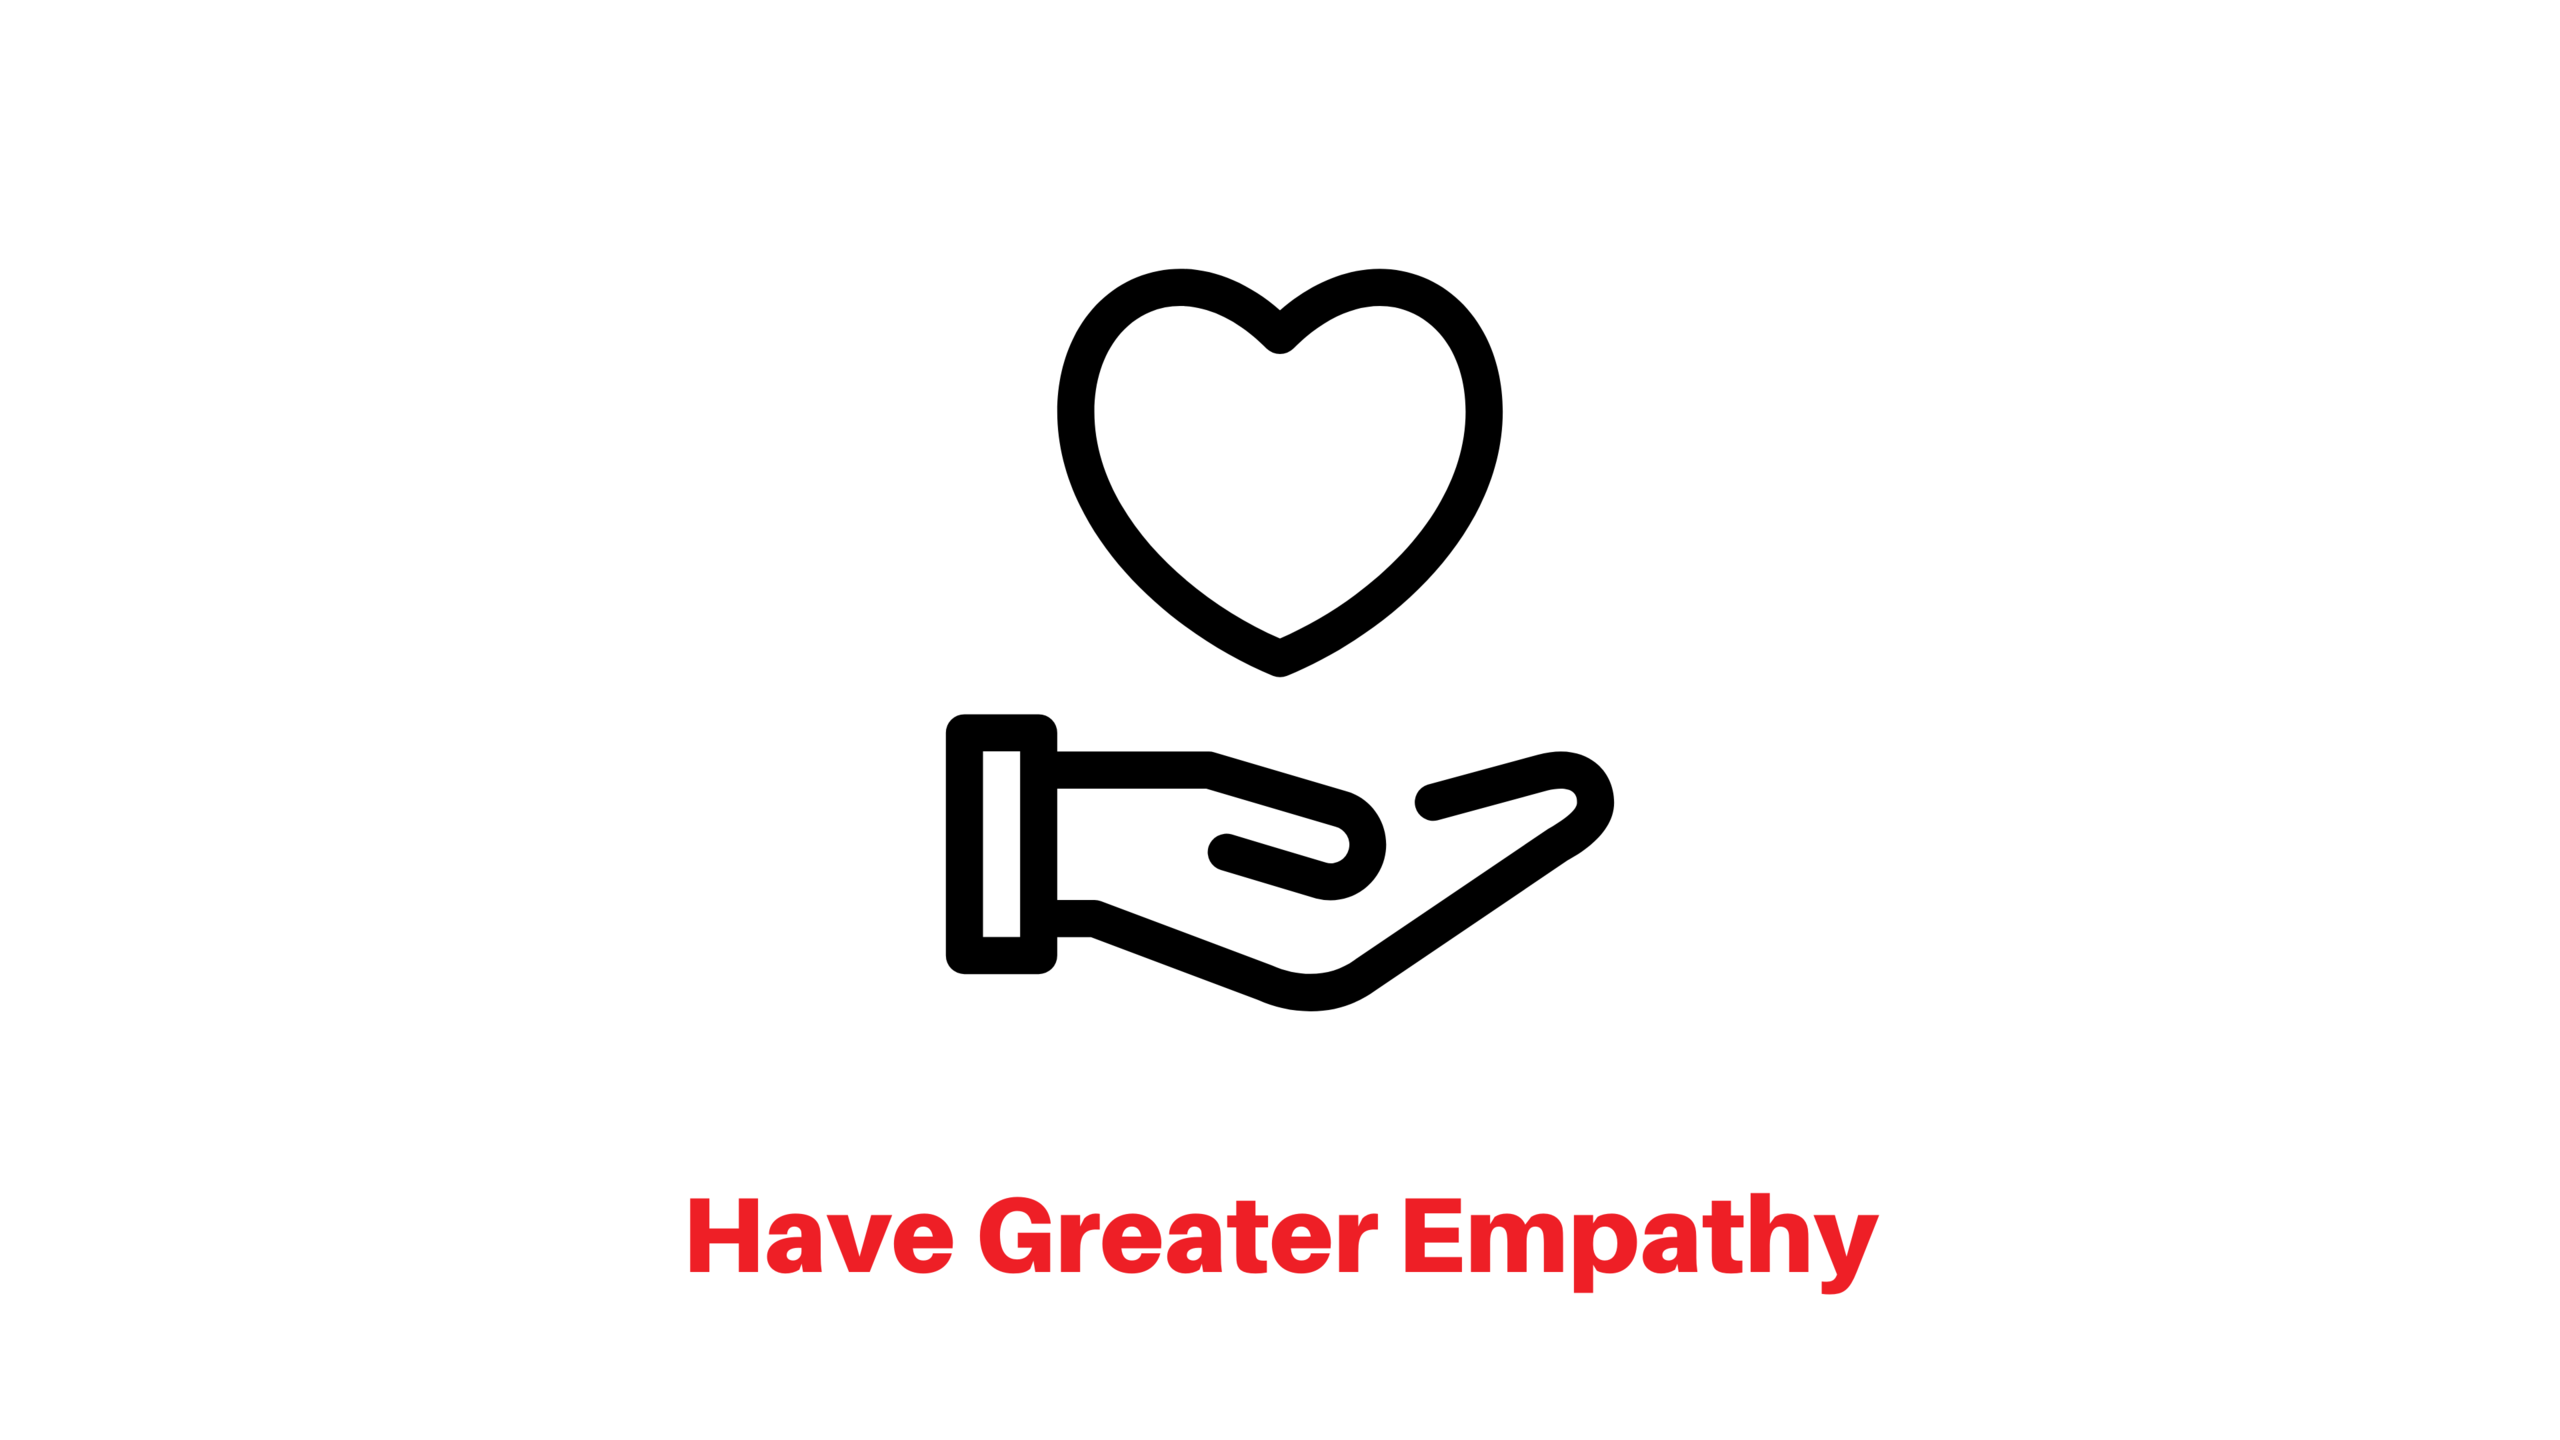 Have greater empathy ocon